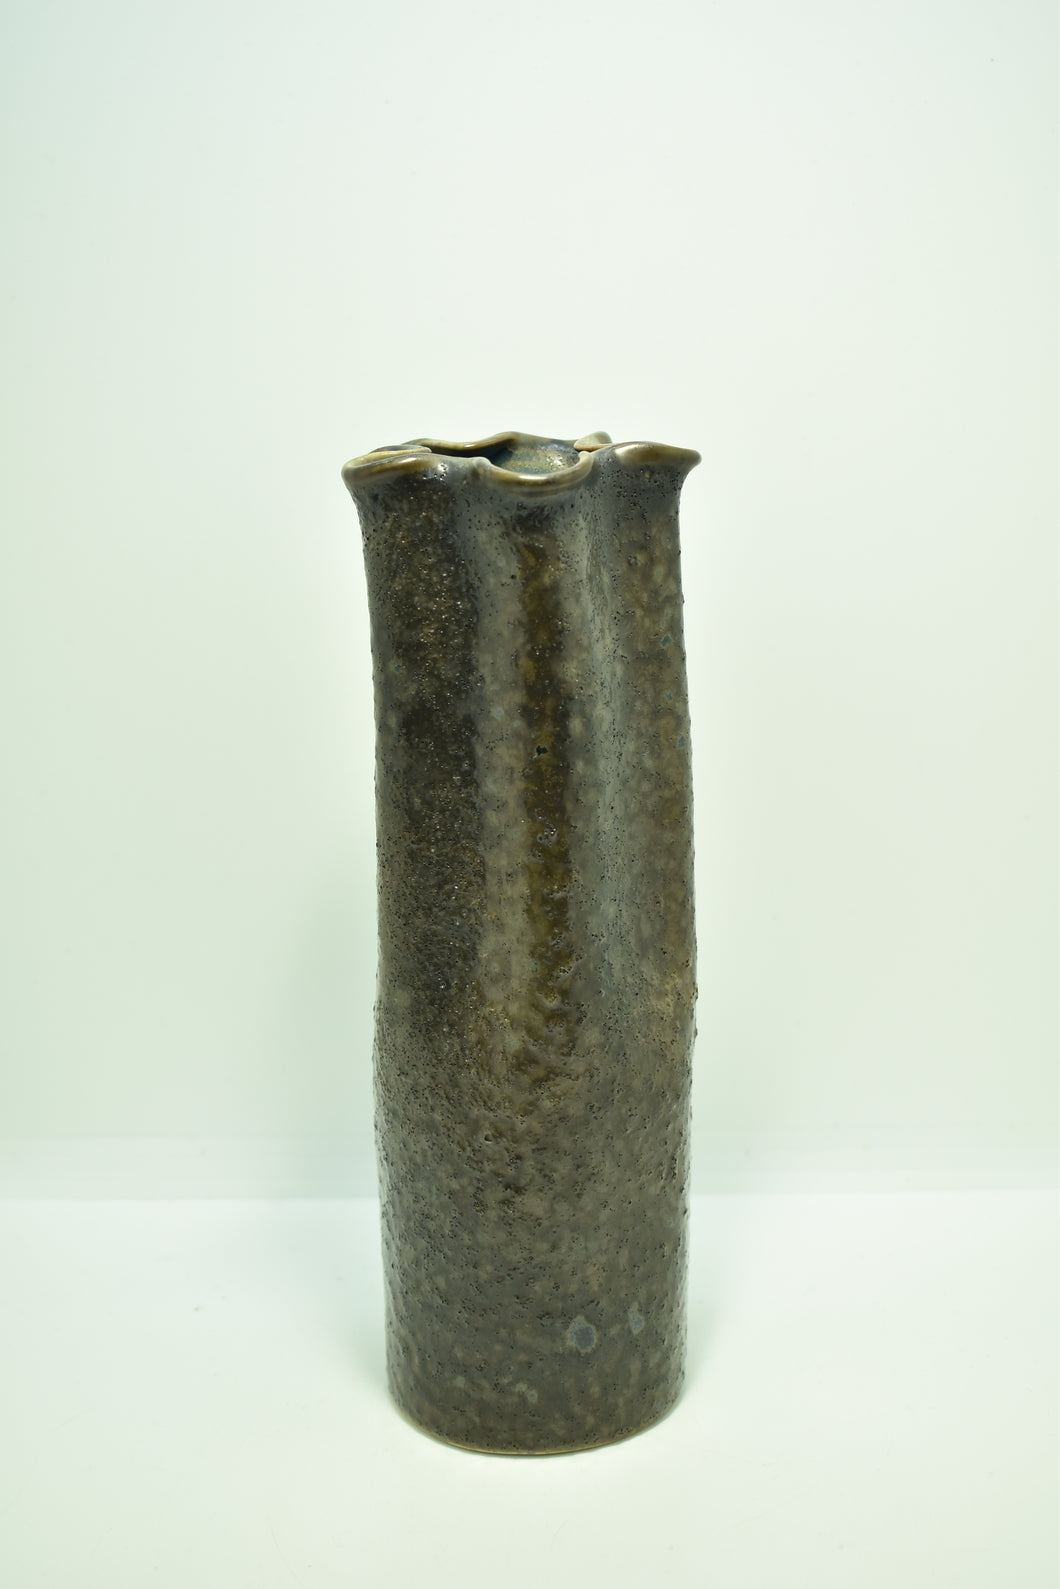 Medium Brown Vase with Flower-Shaped Rim | Mixed Techniques | Textured Surface